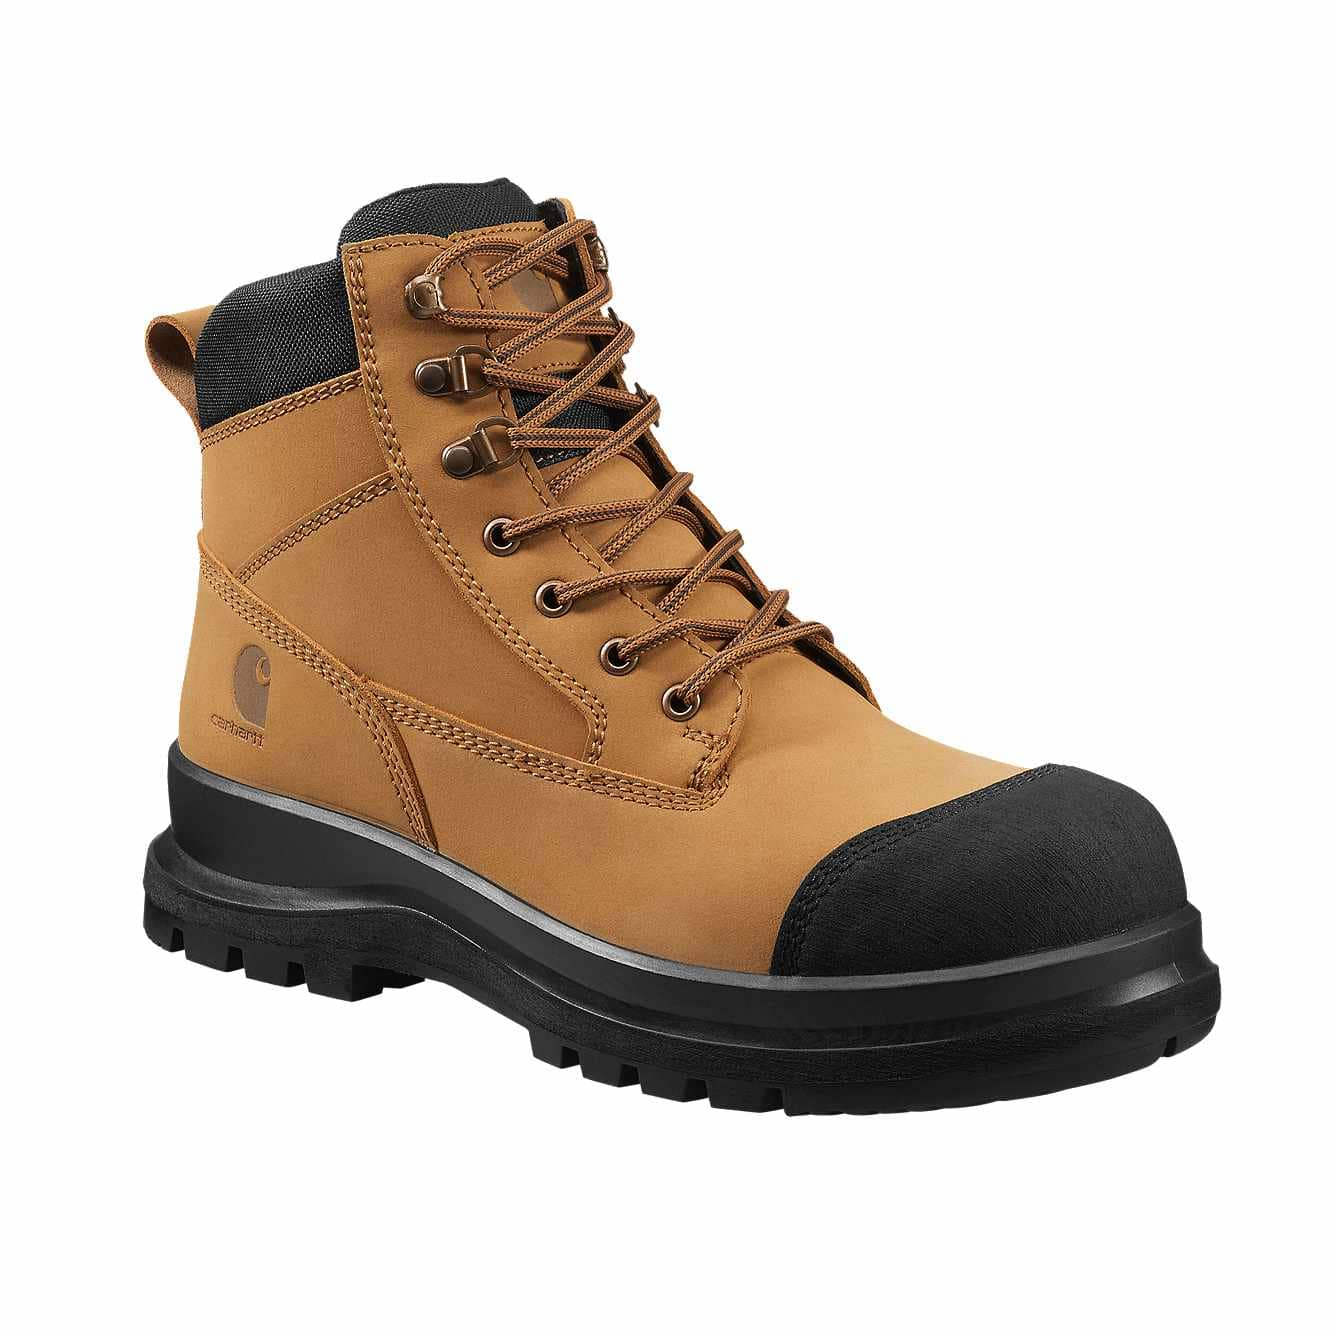 Picture of DETROIT RUGGED FLEX® S3 6 INCH ZIP SAFETY BOOT